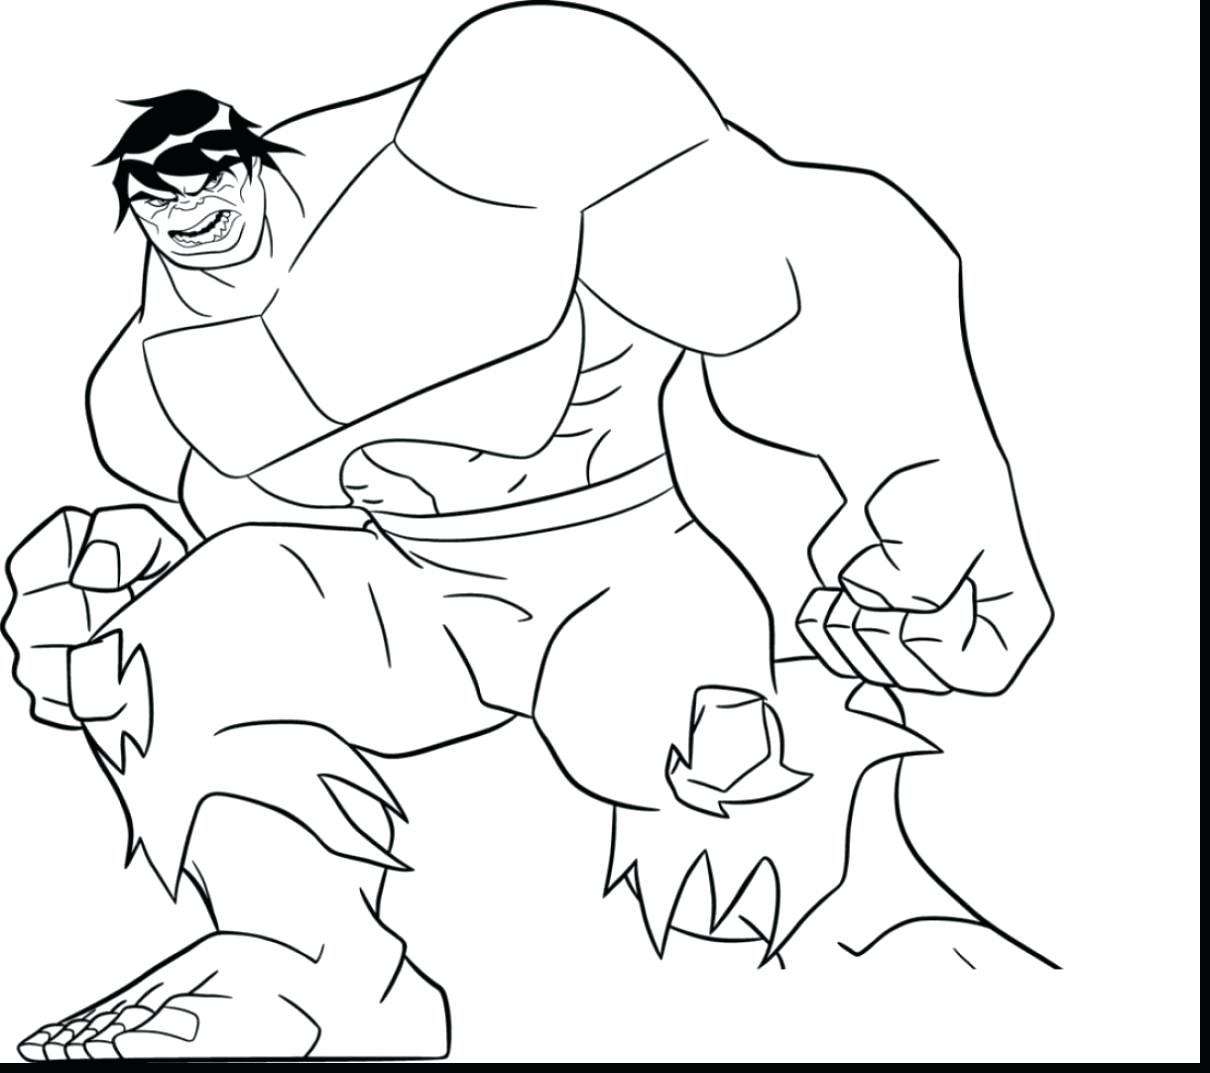 hulk face coloring pages - photo#12